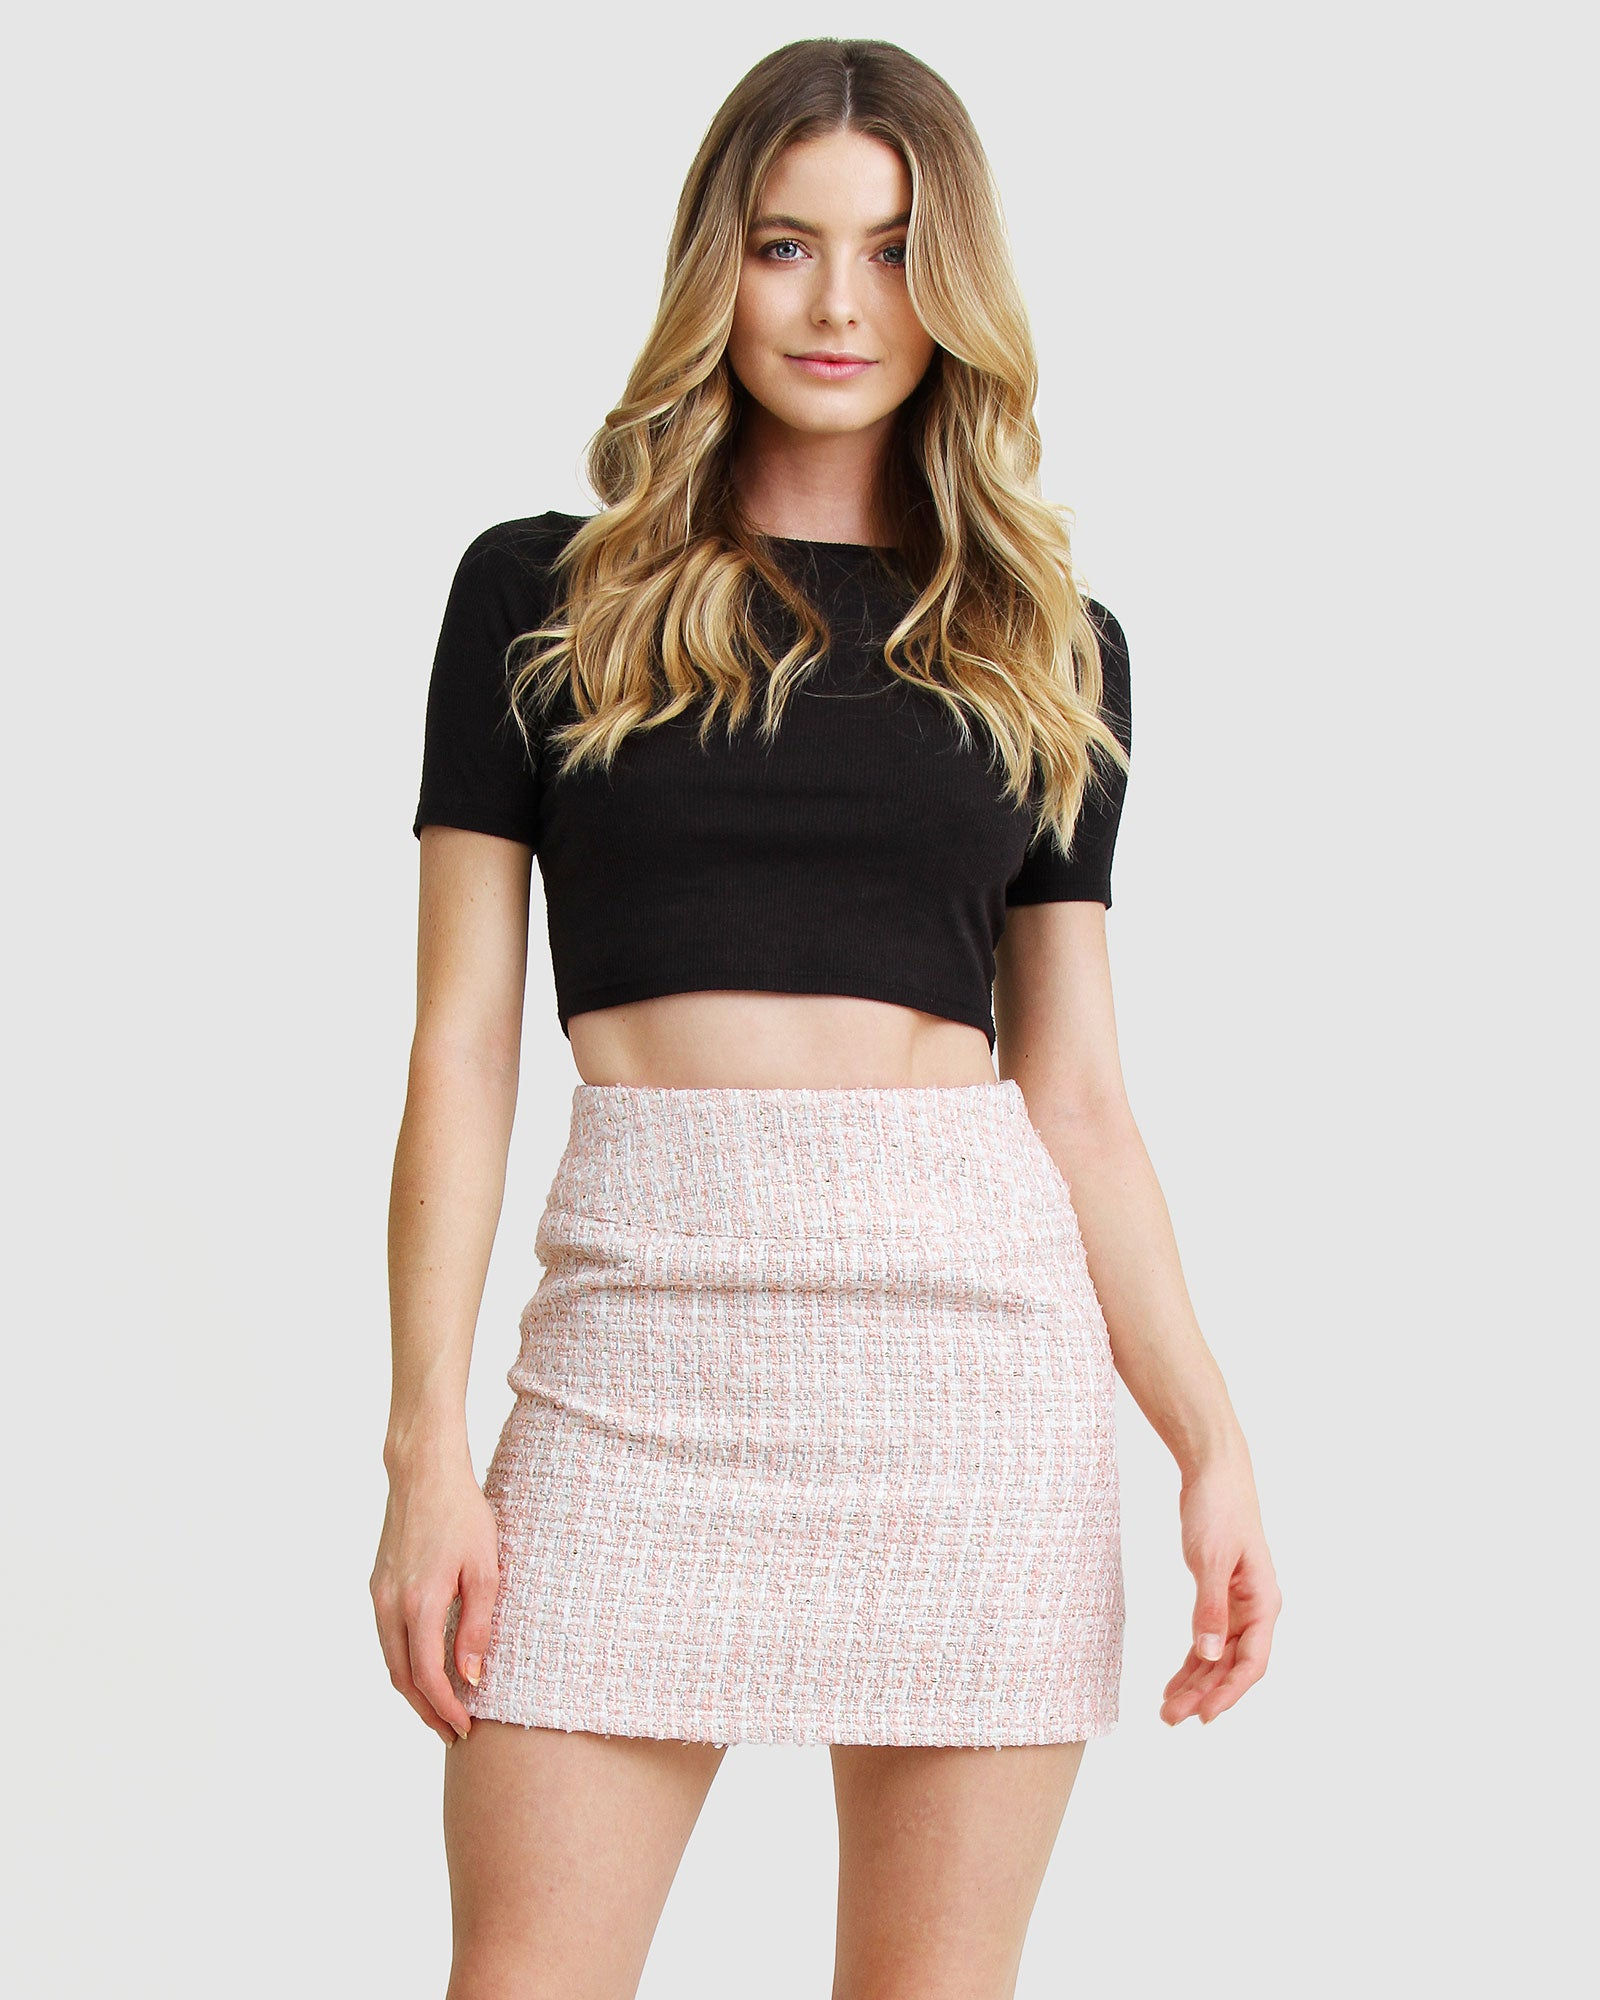 Paddington Fair Skirt - Pink Punch